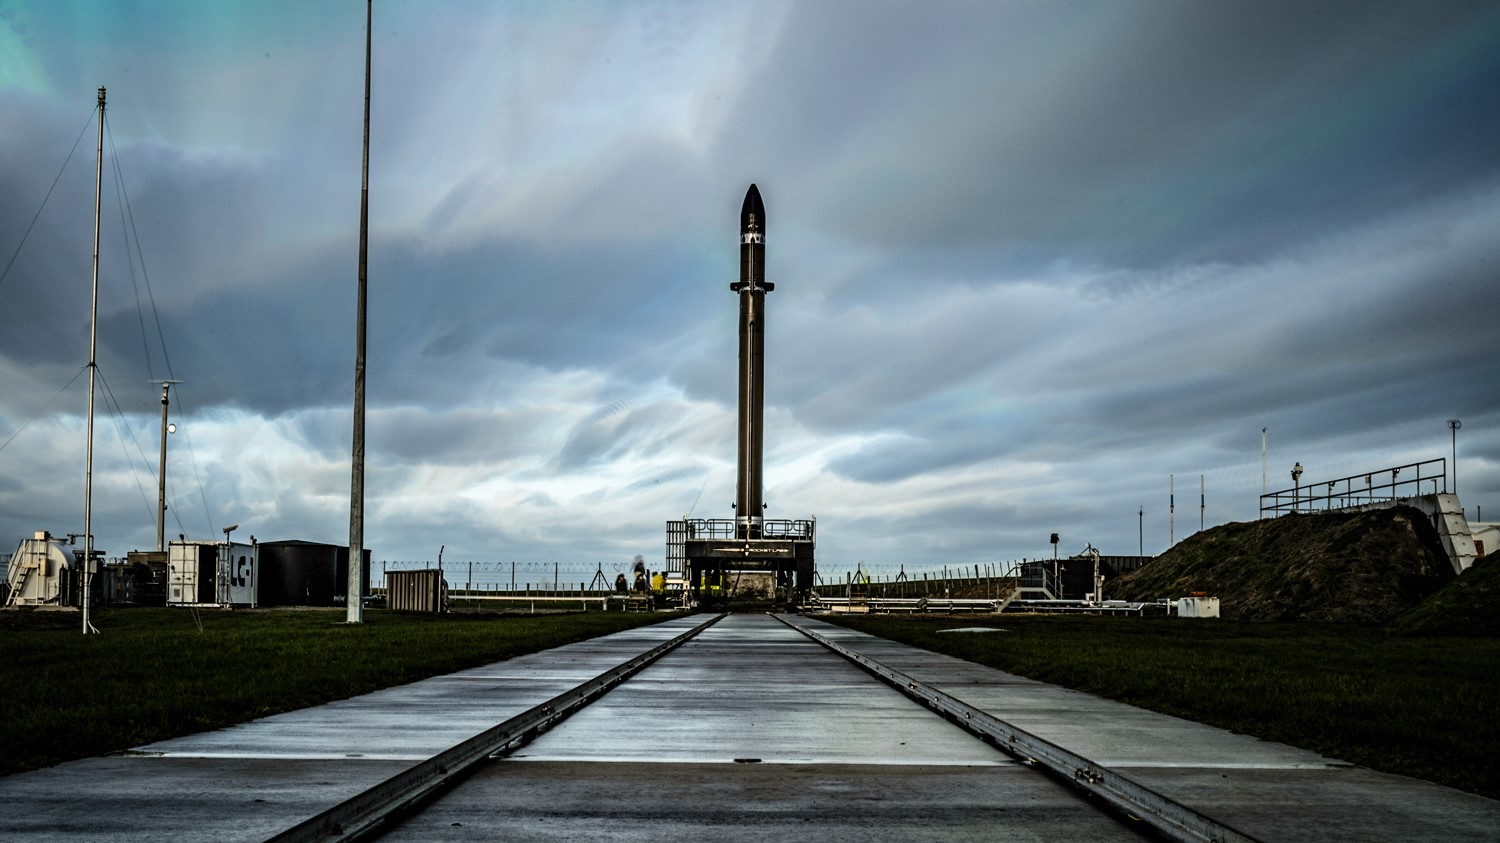 An Electron rocket stands at Rocket Lab's Launch Complex 1 in New Zealand. Photo Credit: Rocket Lab